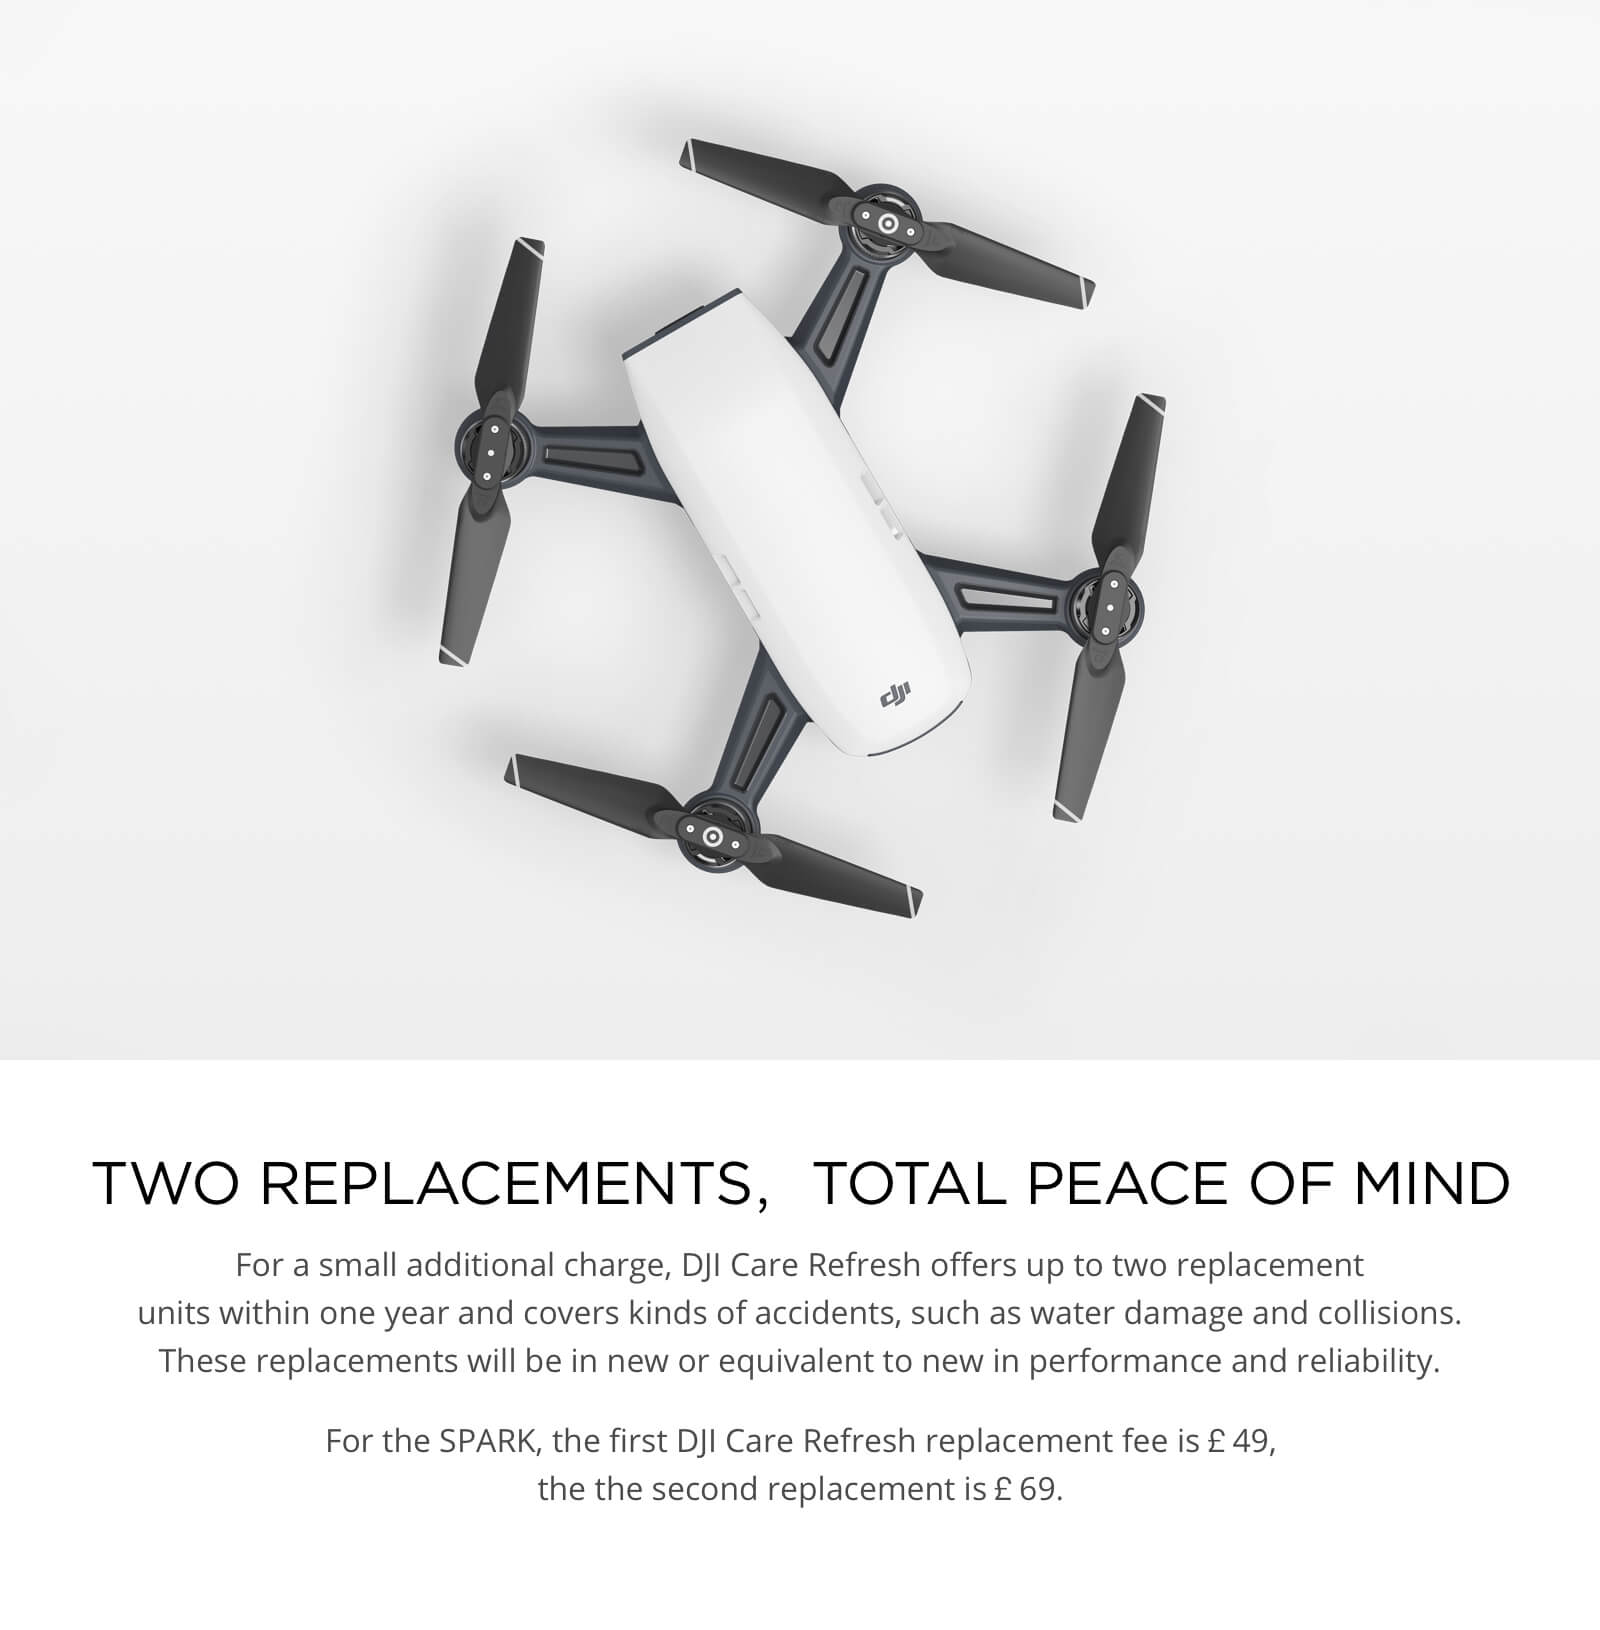 04Two%20Replacements%uFF0CTotal%20Peace%20of%20mind%20spark.jpg